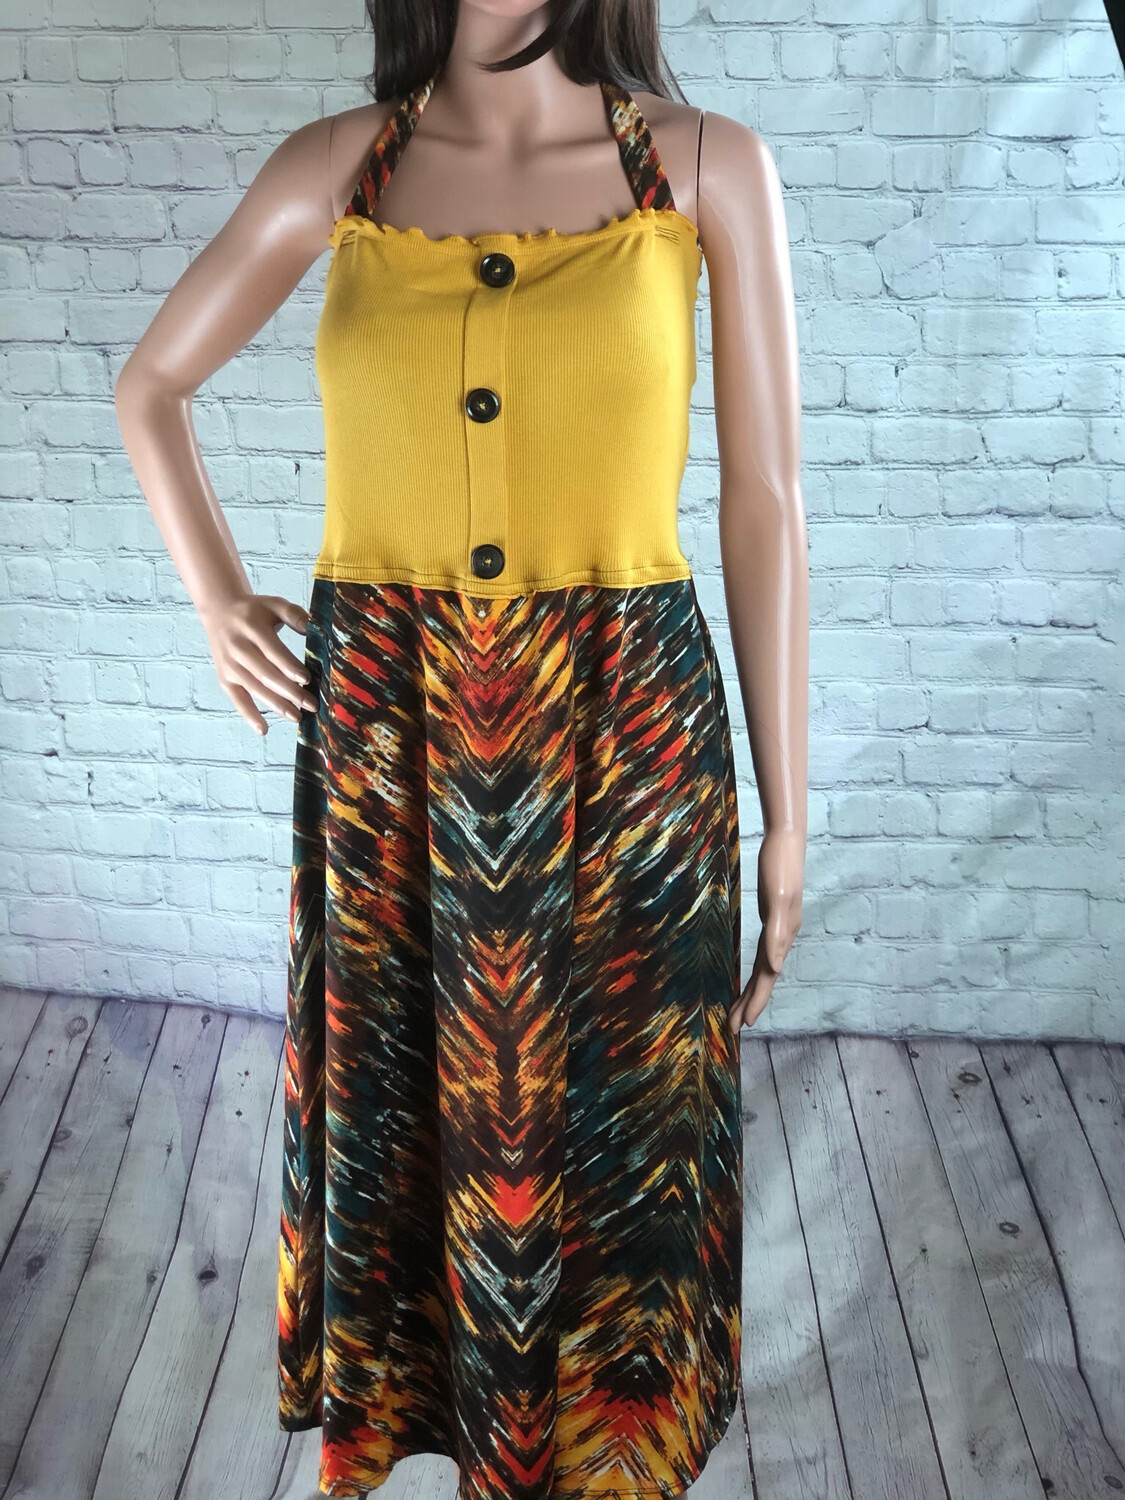 Eco Friendly Yellow Button Summer Dress Colorful Comfy Upcycled Recycled Fashion Halter Dress size M